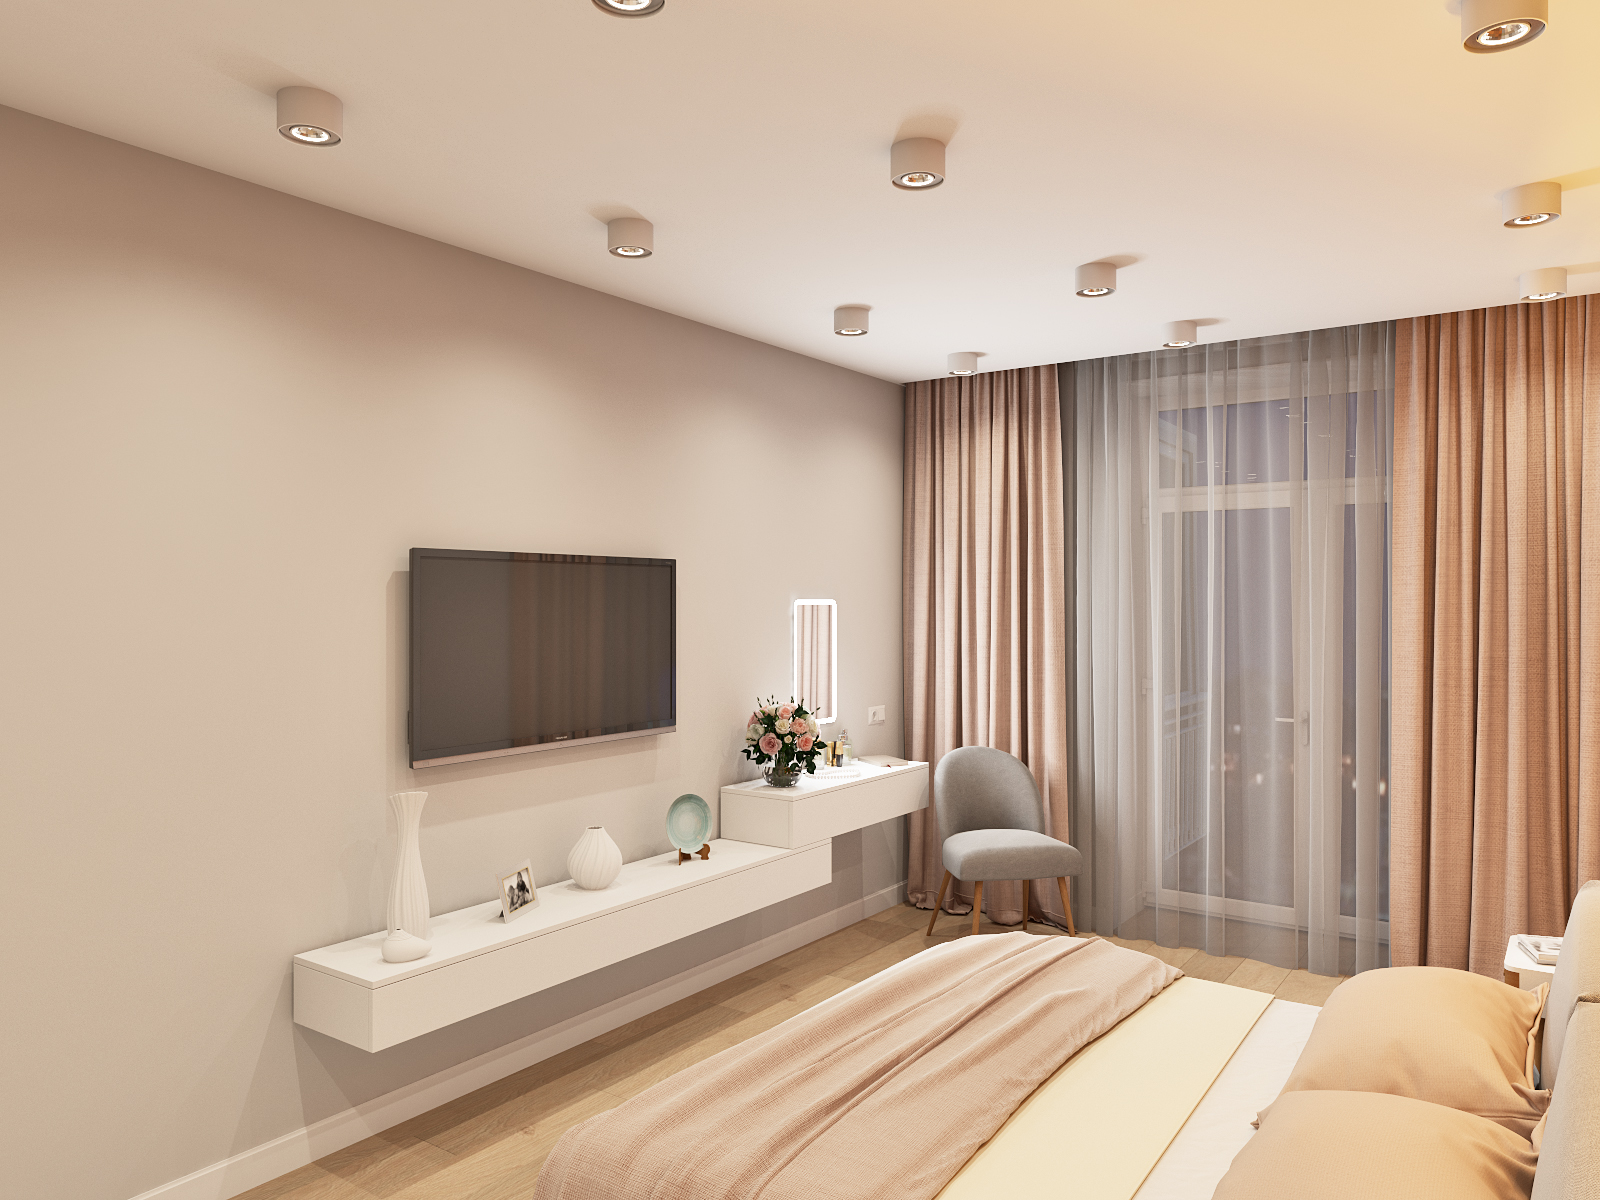 Bedroom-renders-8